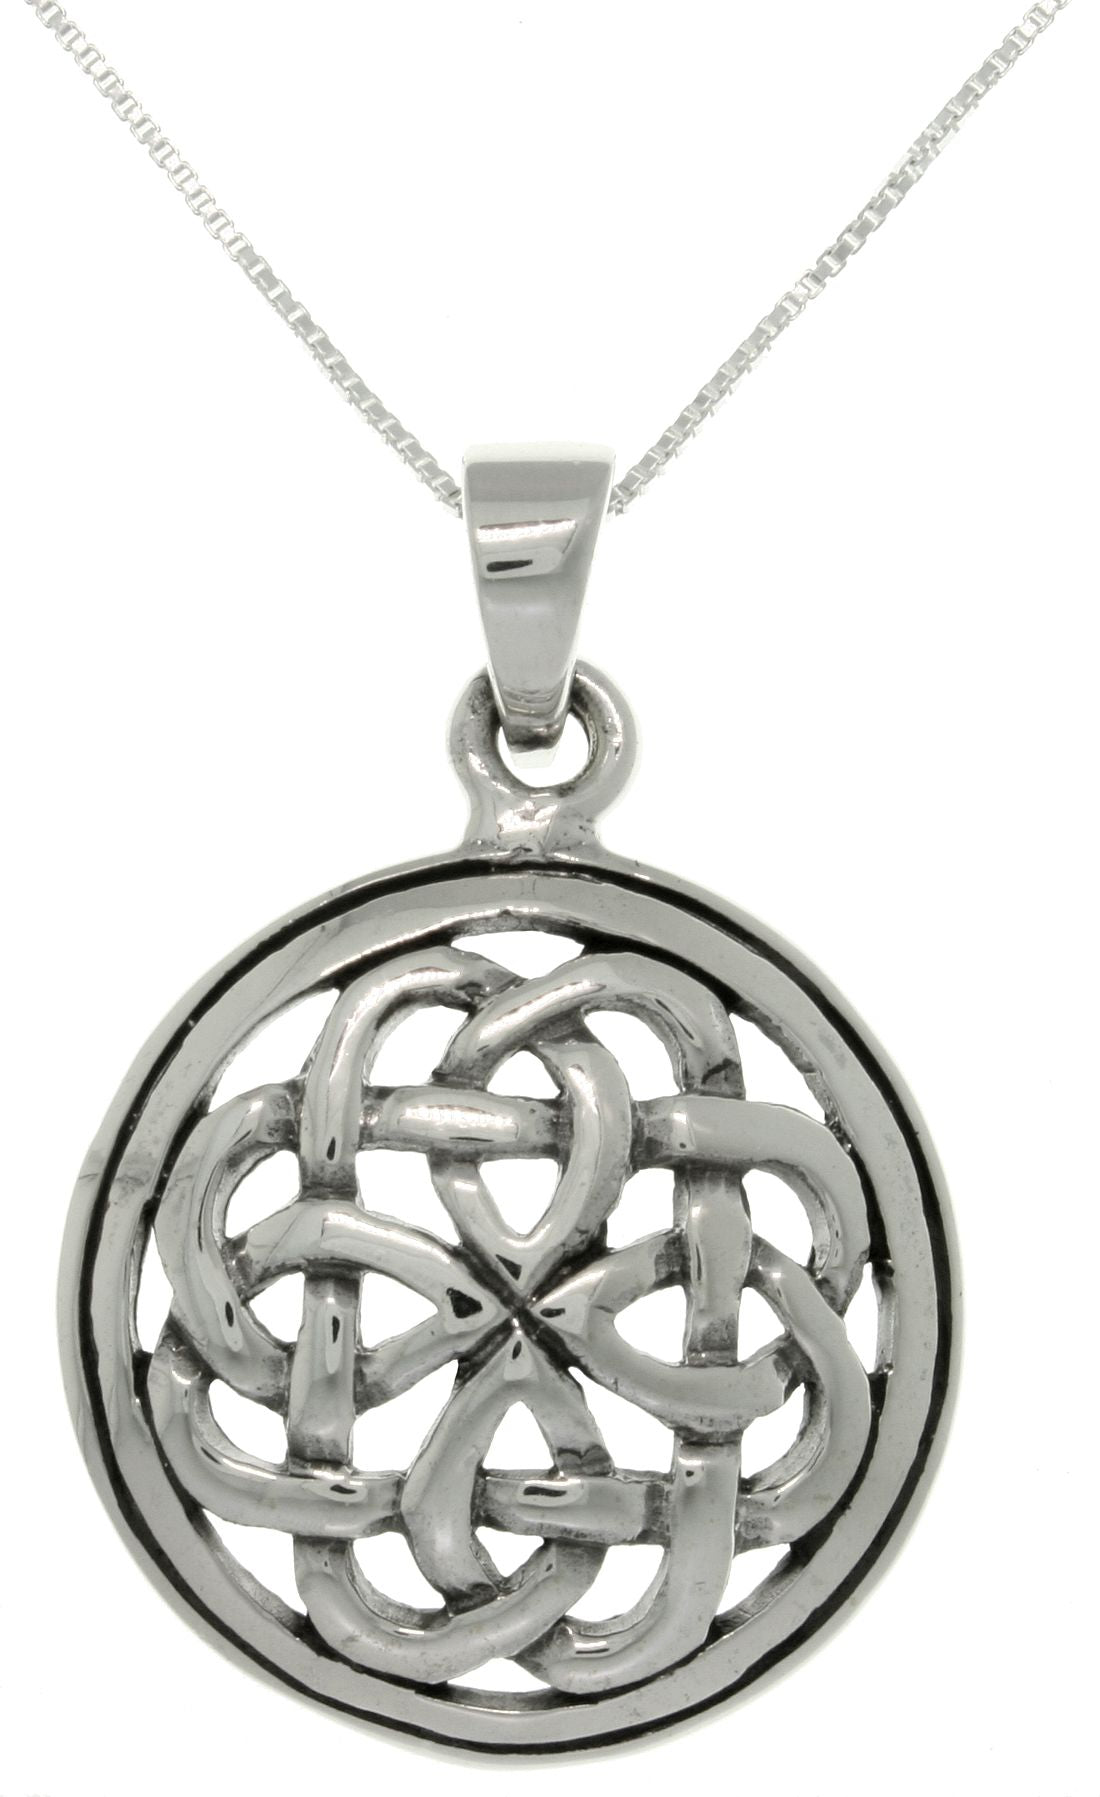 Jewelry Trends Sterling Silver Eternal Celtic Knot Pendant with 18 Inch Box Chain Necklace